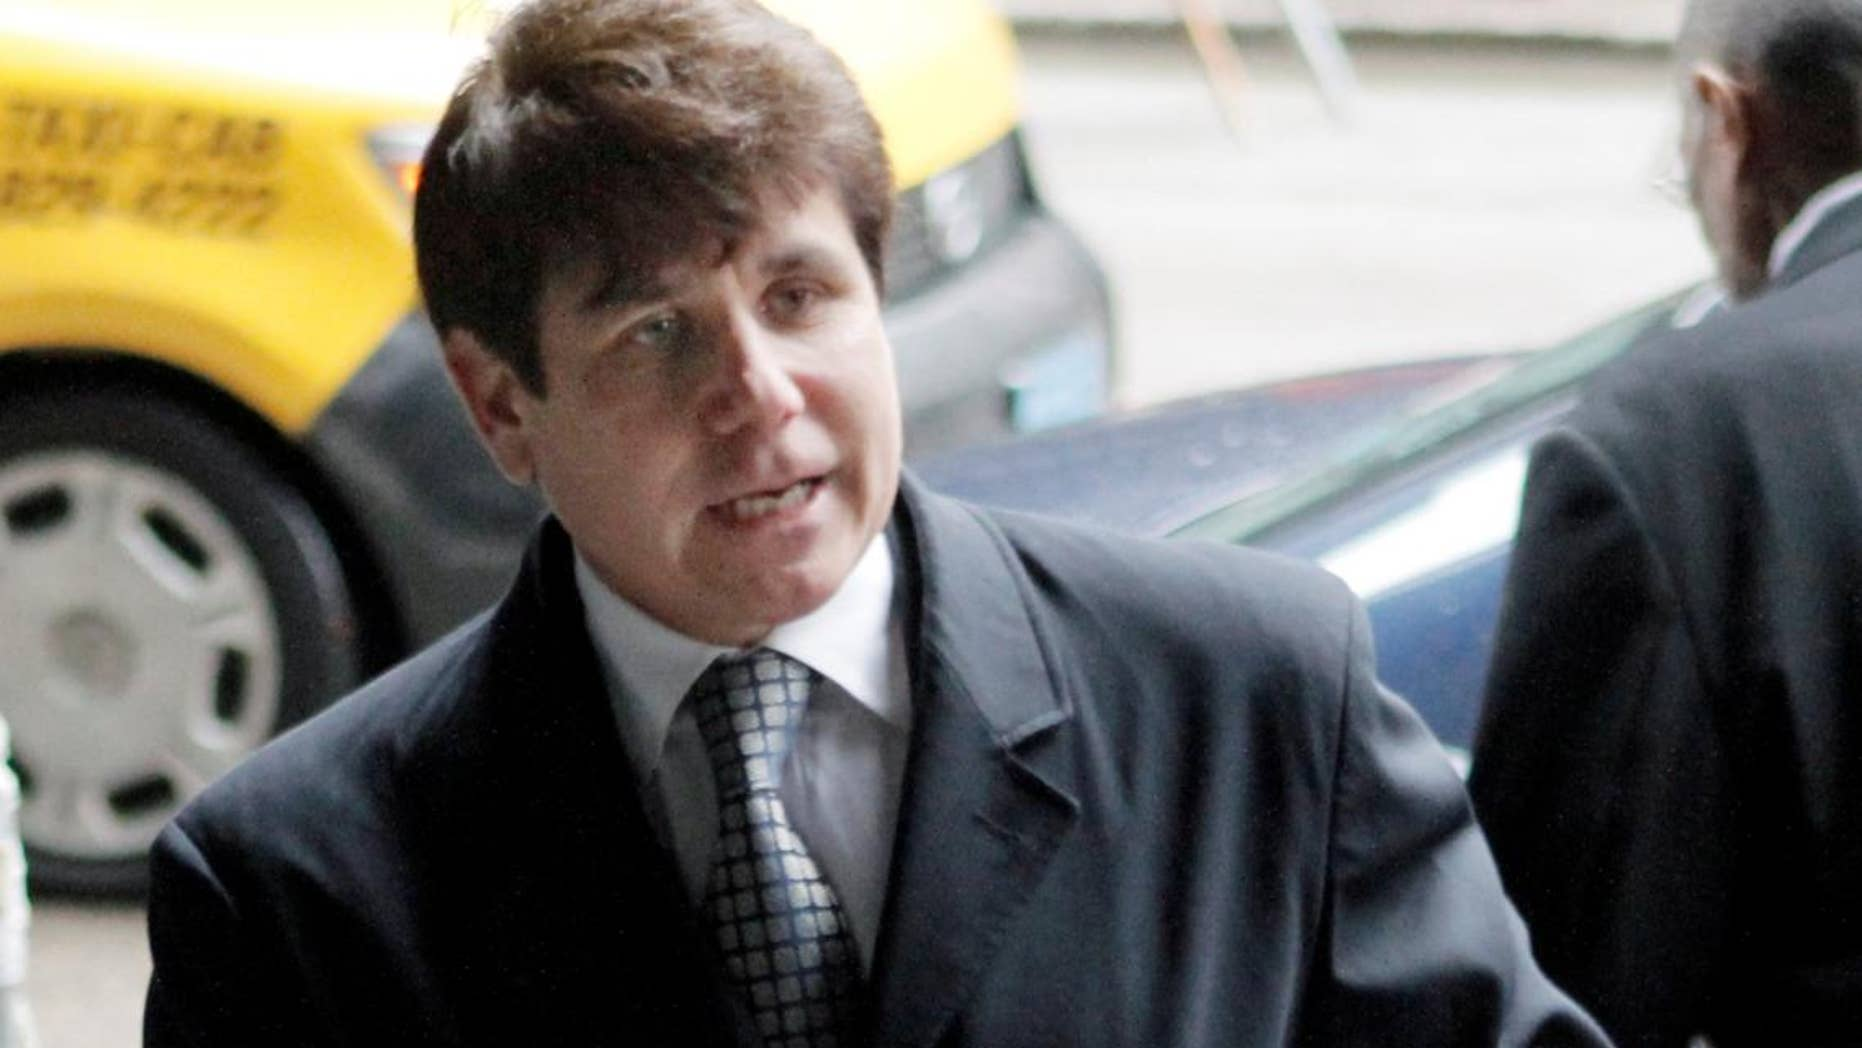 Former Illinois Gov. Rod Blagojevich, arrives at federal court before taking the stand in his second corruption trial, Thursday, May 26, 2011, in Chicago. (AP Photo/M. Spencer Green)